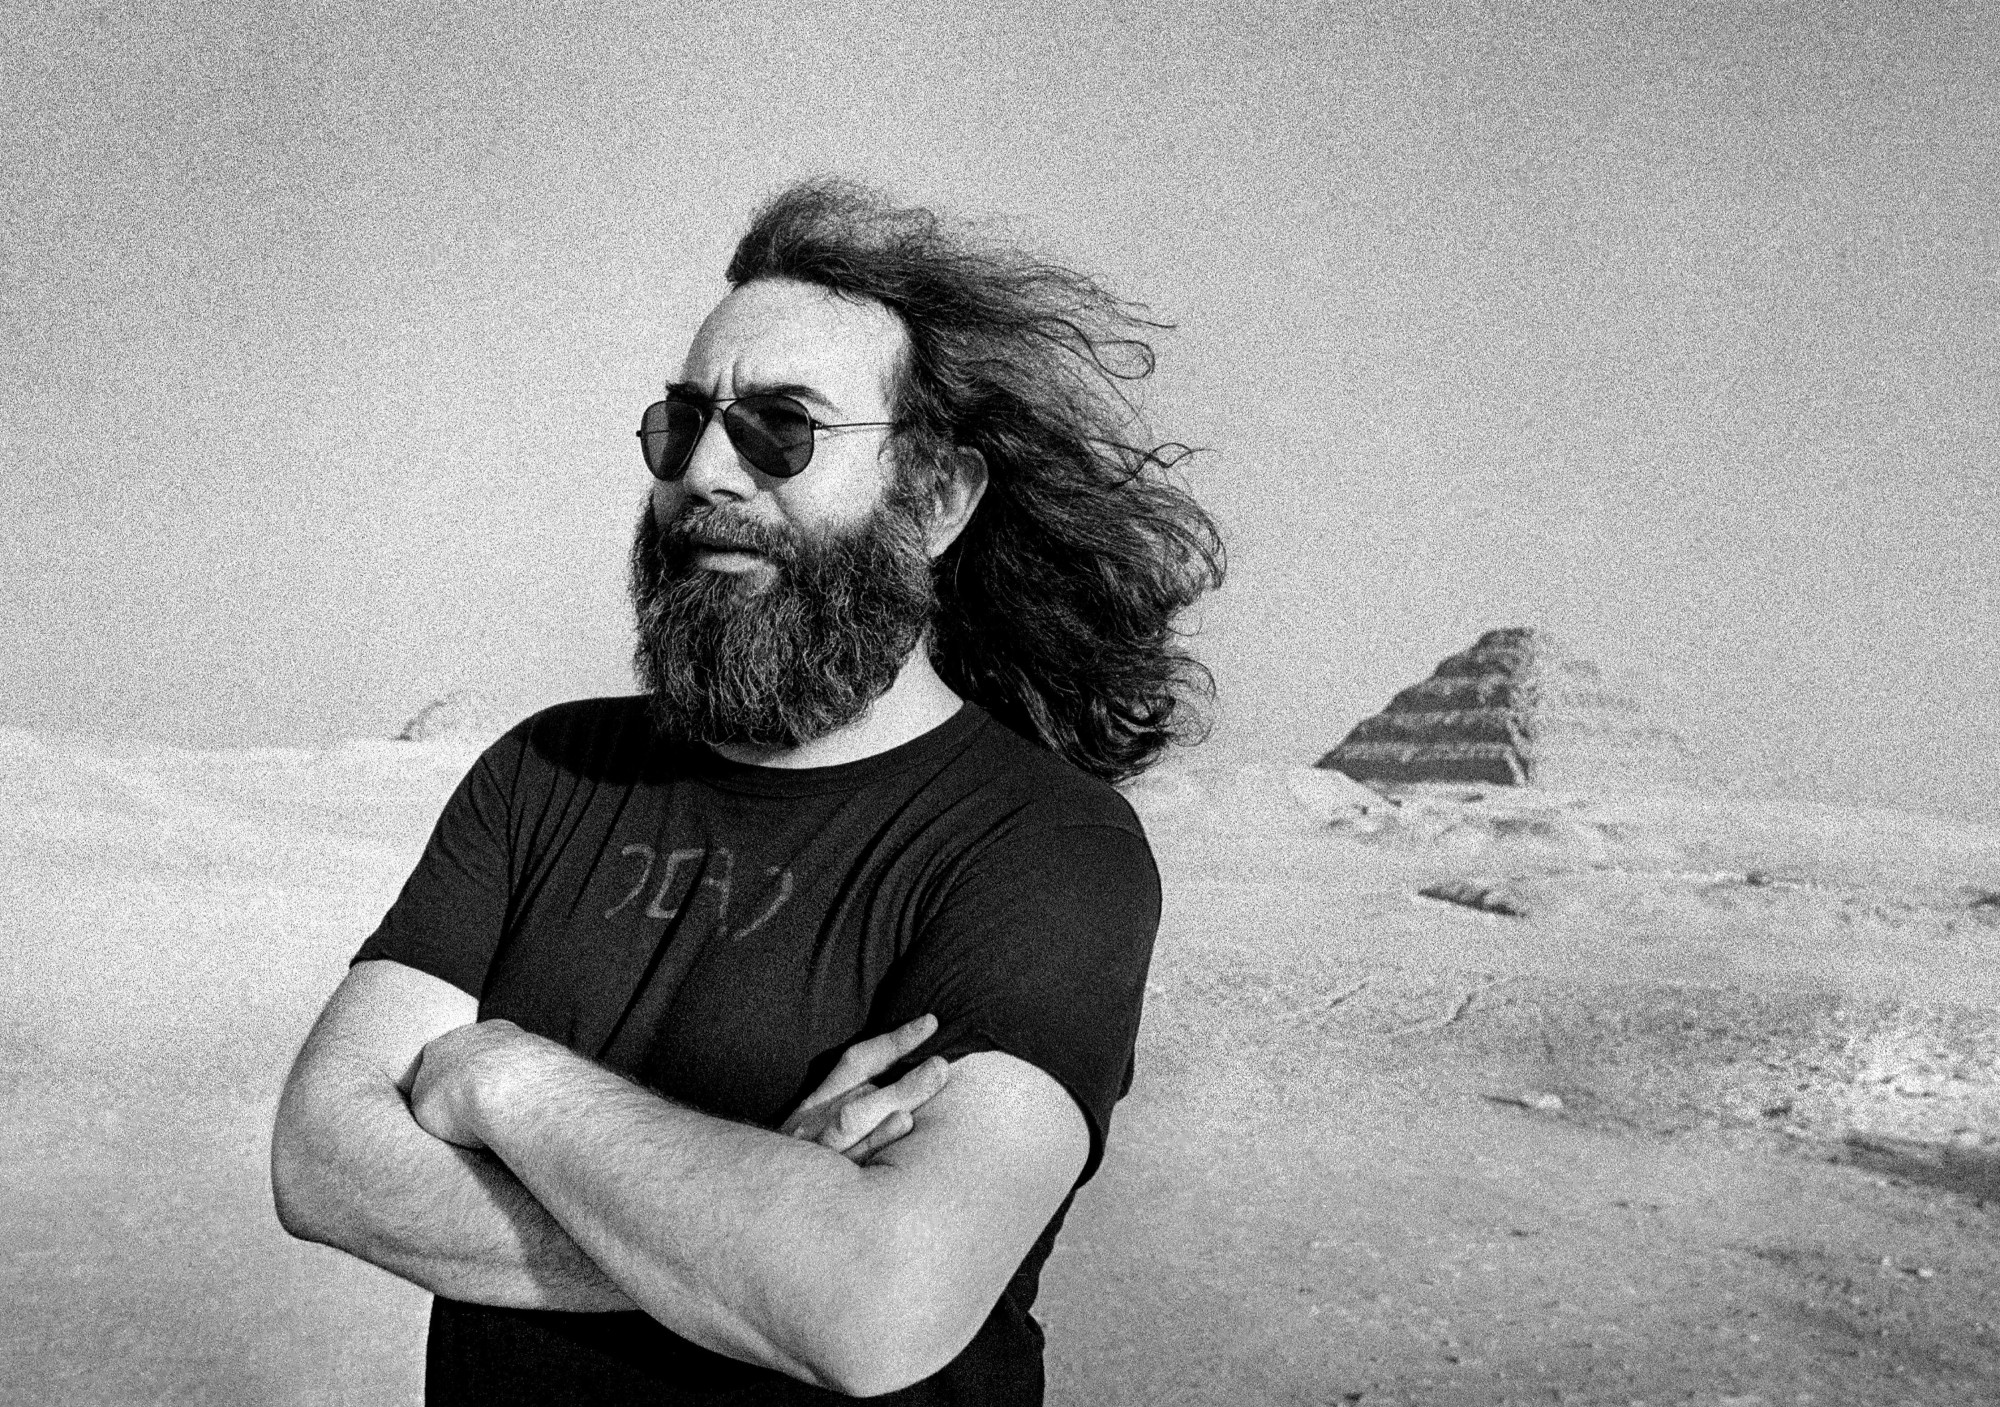 the life and death of jerry garcia The death of jerry garcia, founder and lead guitarist of the grateful dead, brought down the bloomberg terminal, an essential wall street tool.